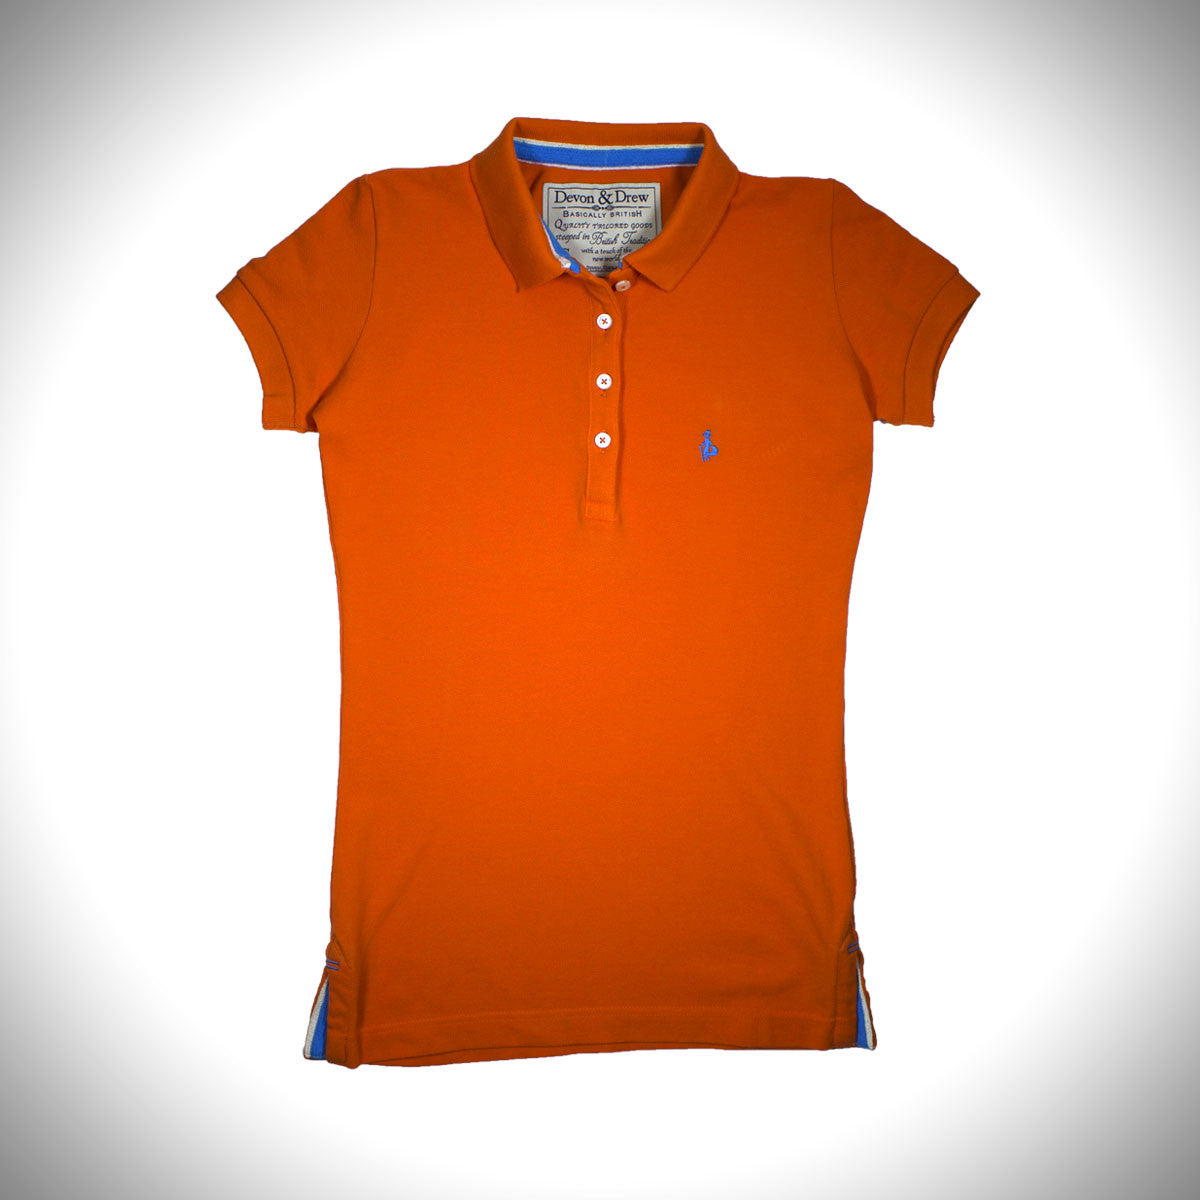 Womens polo shirt devon drew basically british westminster skinny stretch polo shirt geenschuldenfo Image collections